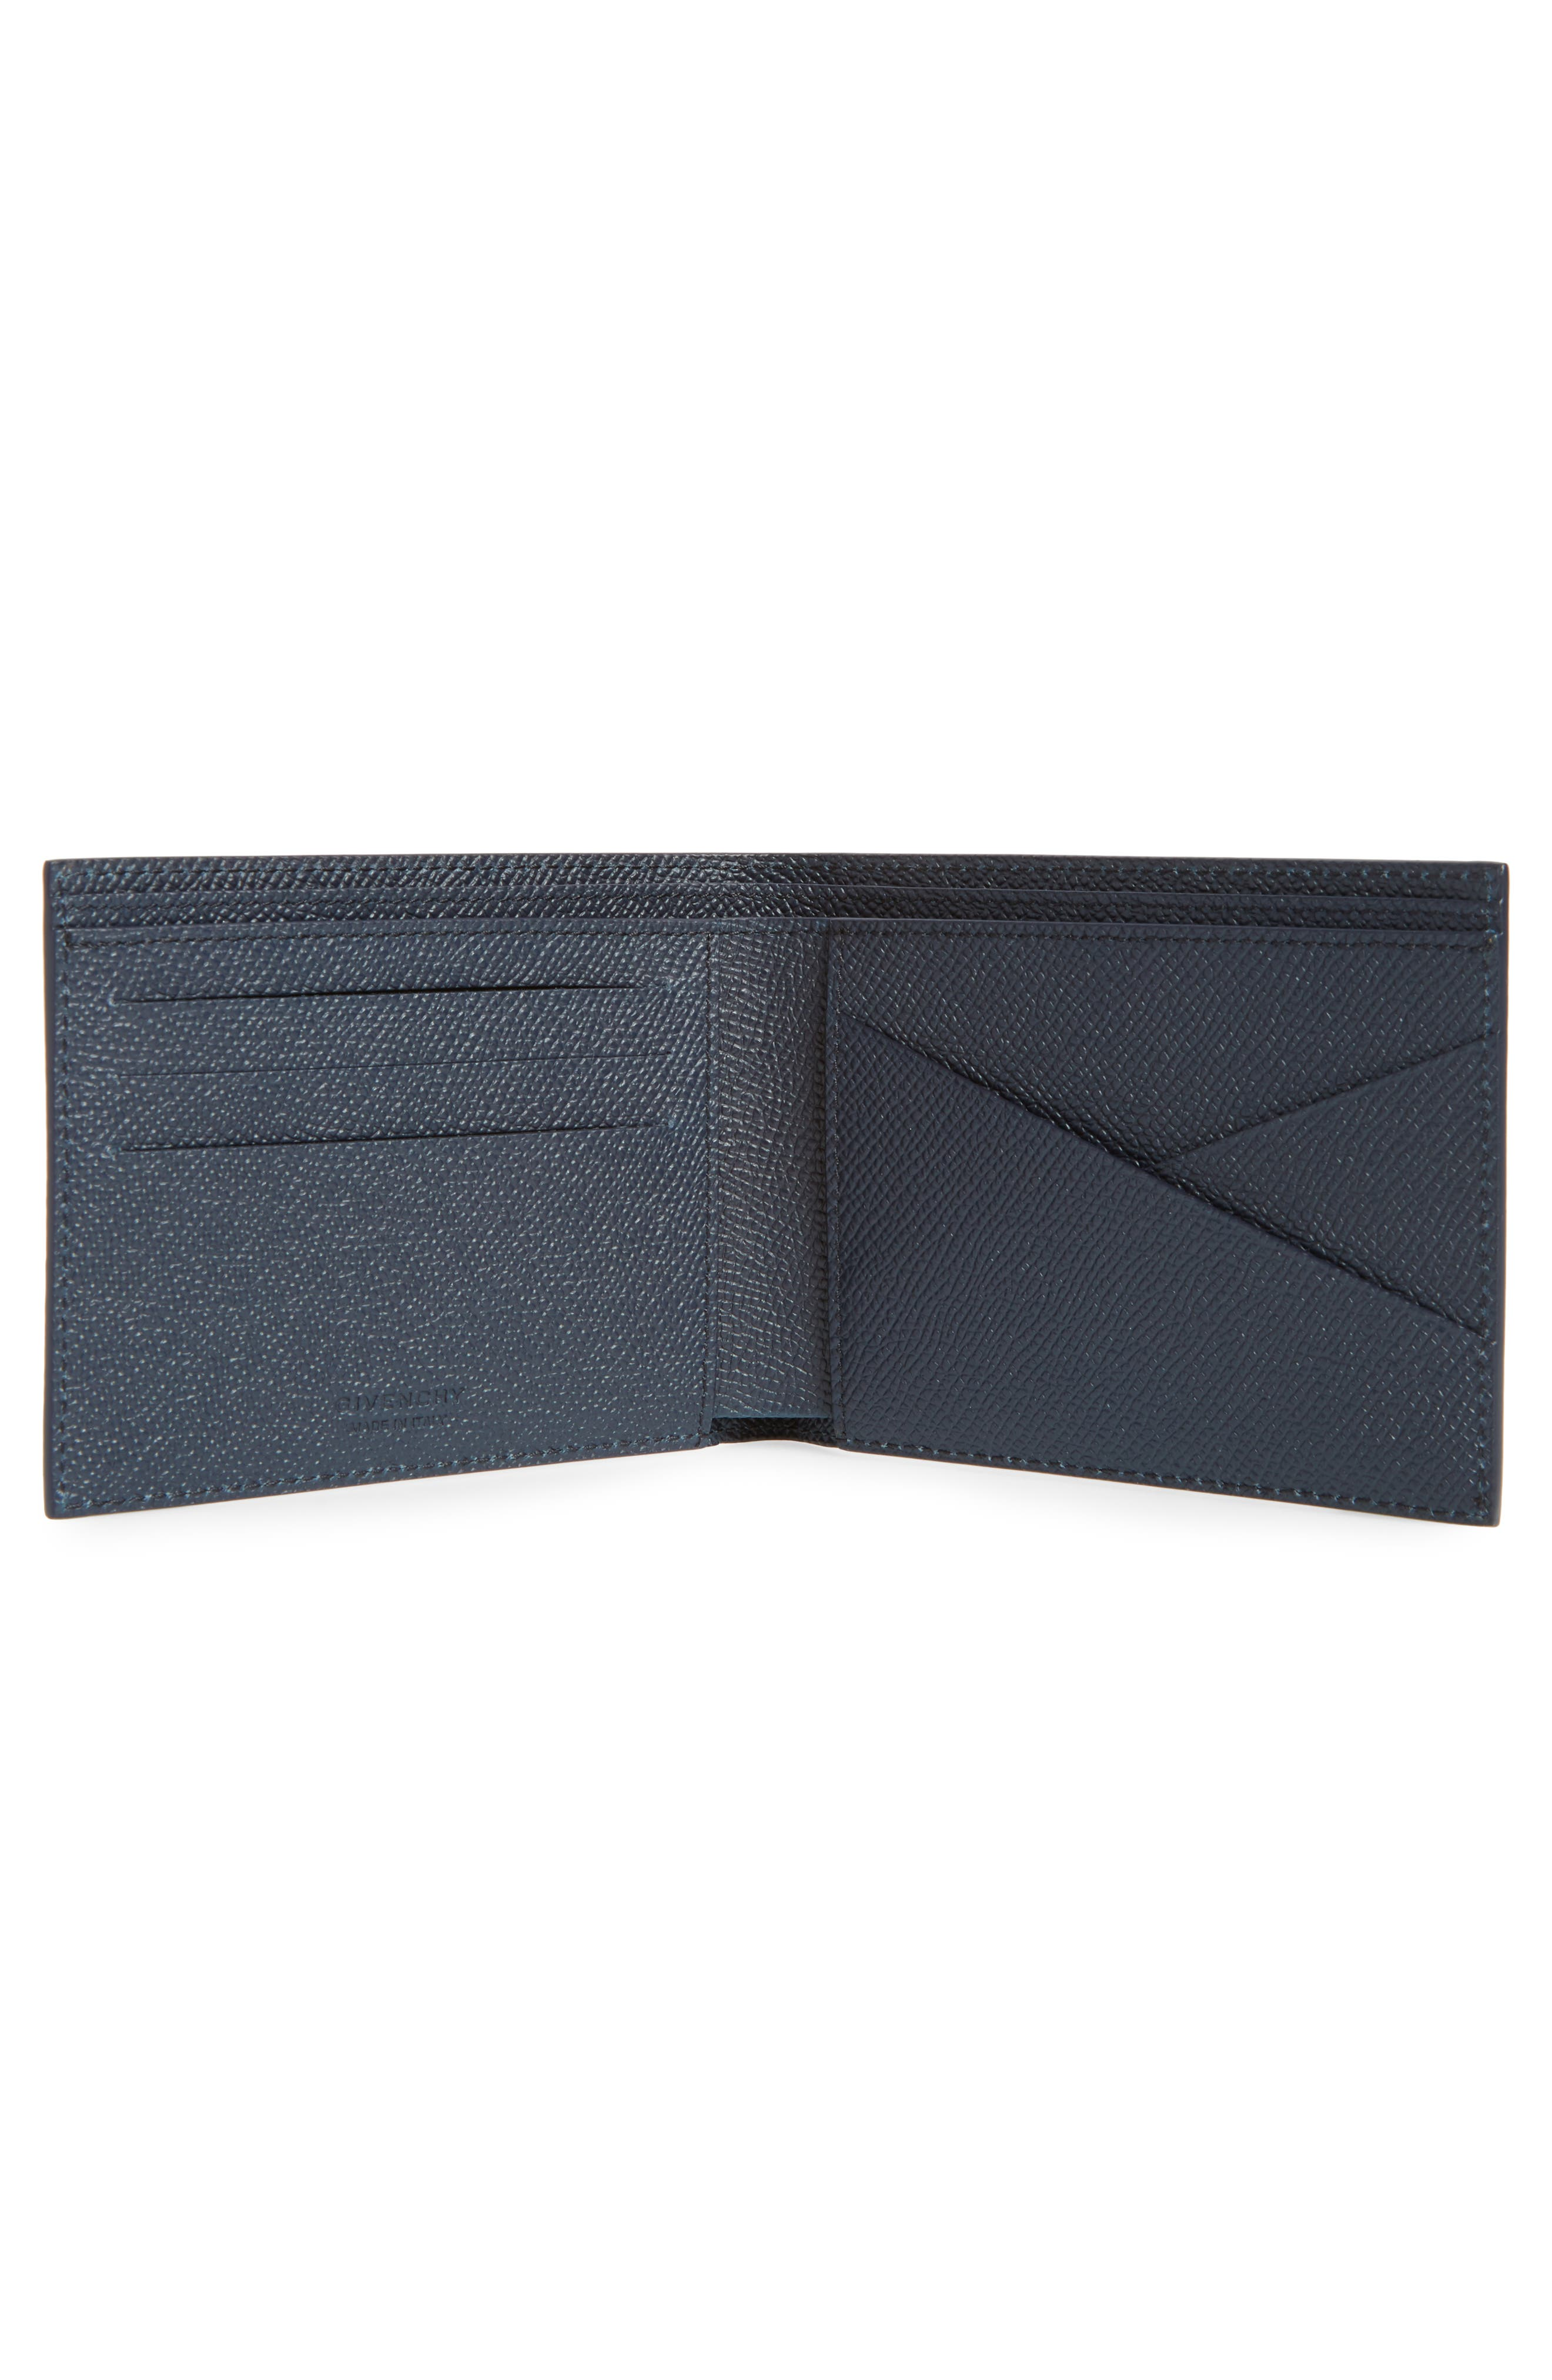 Eros Textured Leather Wallet,                             Alternate thumbnail 2, color,                             NAVY